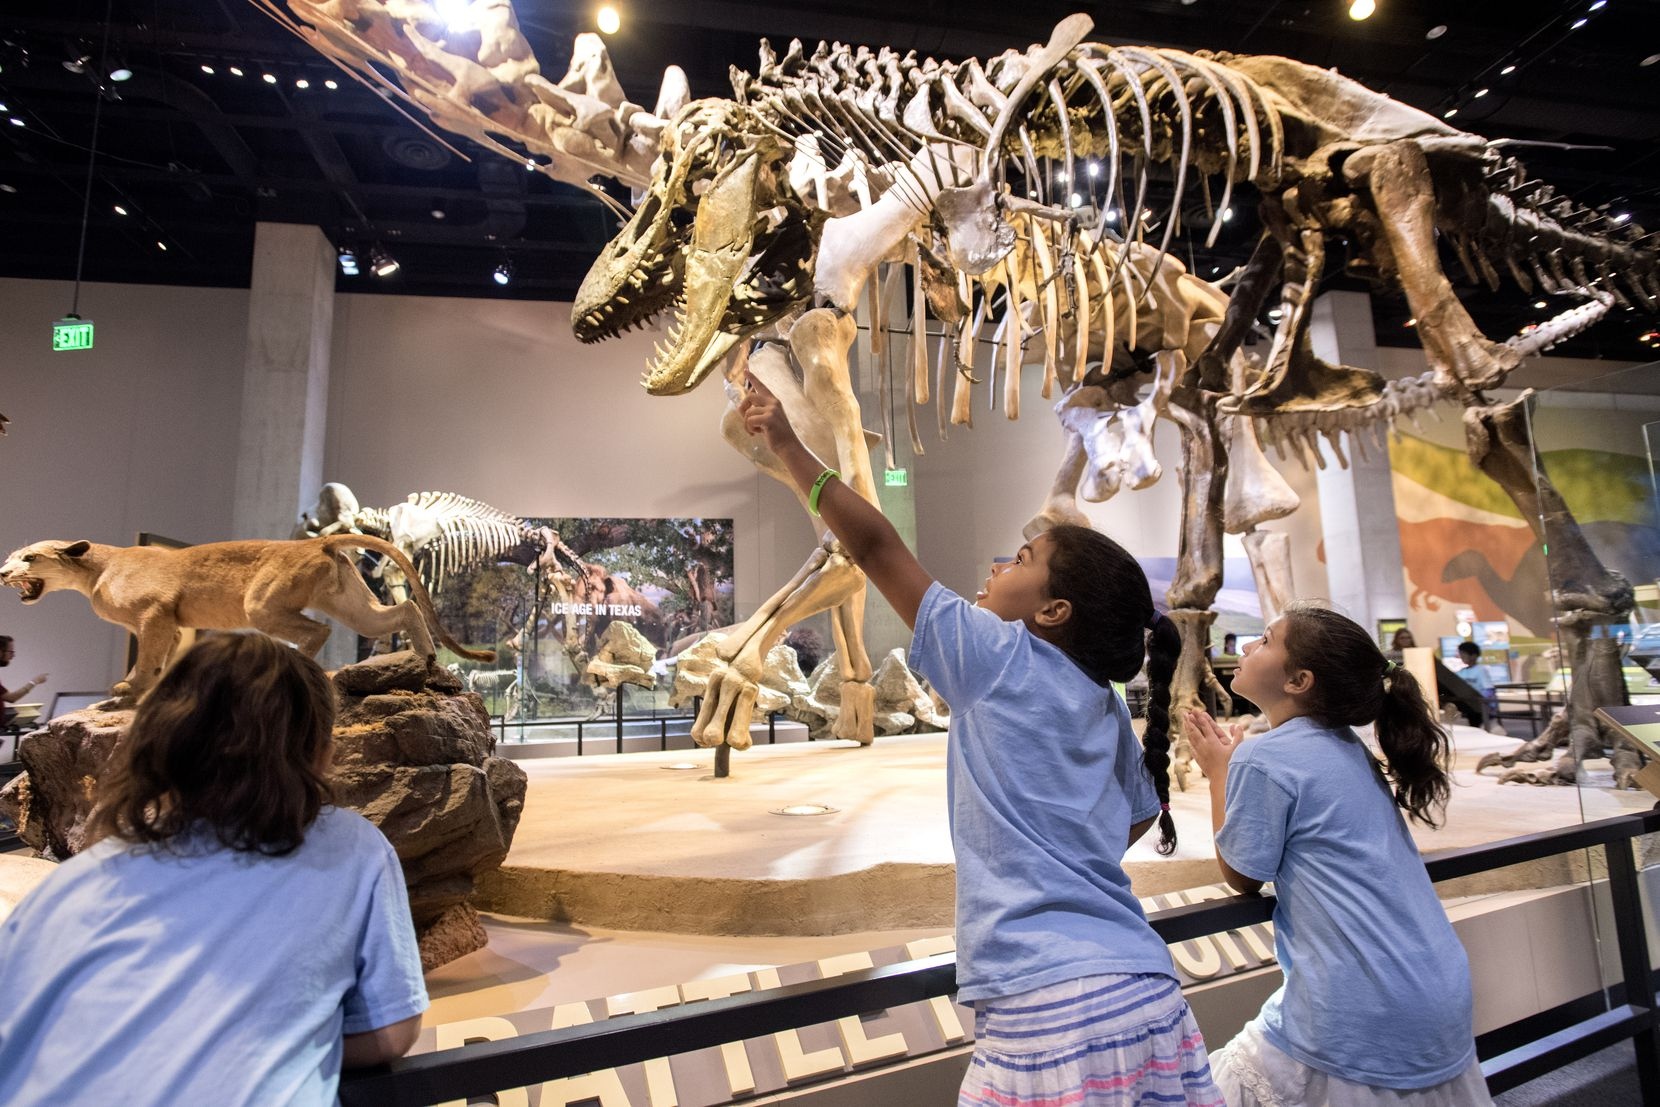 Amelia Pancoast, 9, center, points out dinosaur skeletons to her sisters during the Snore and Explore sleepover event at the Perot Museum in Dallas.